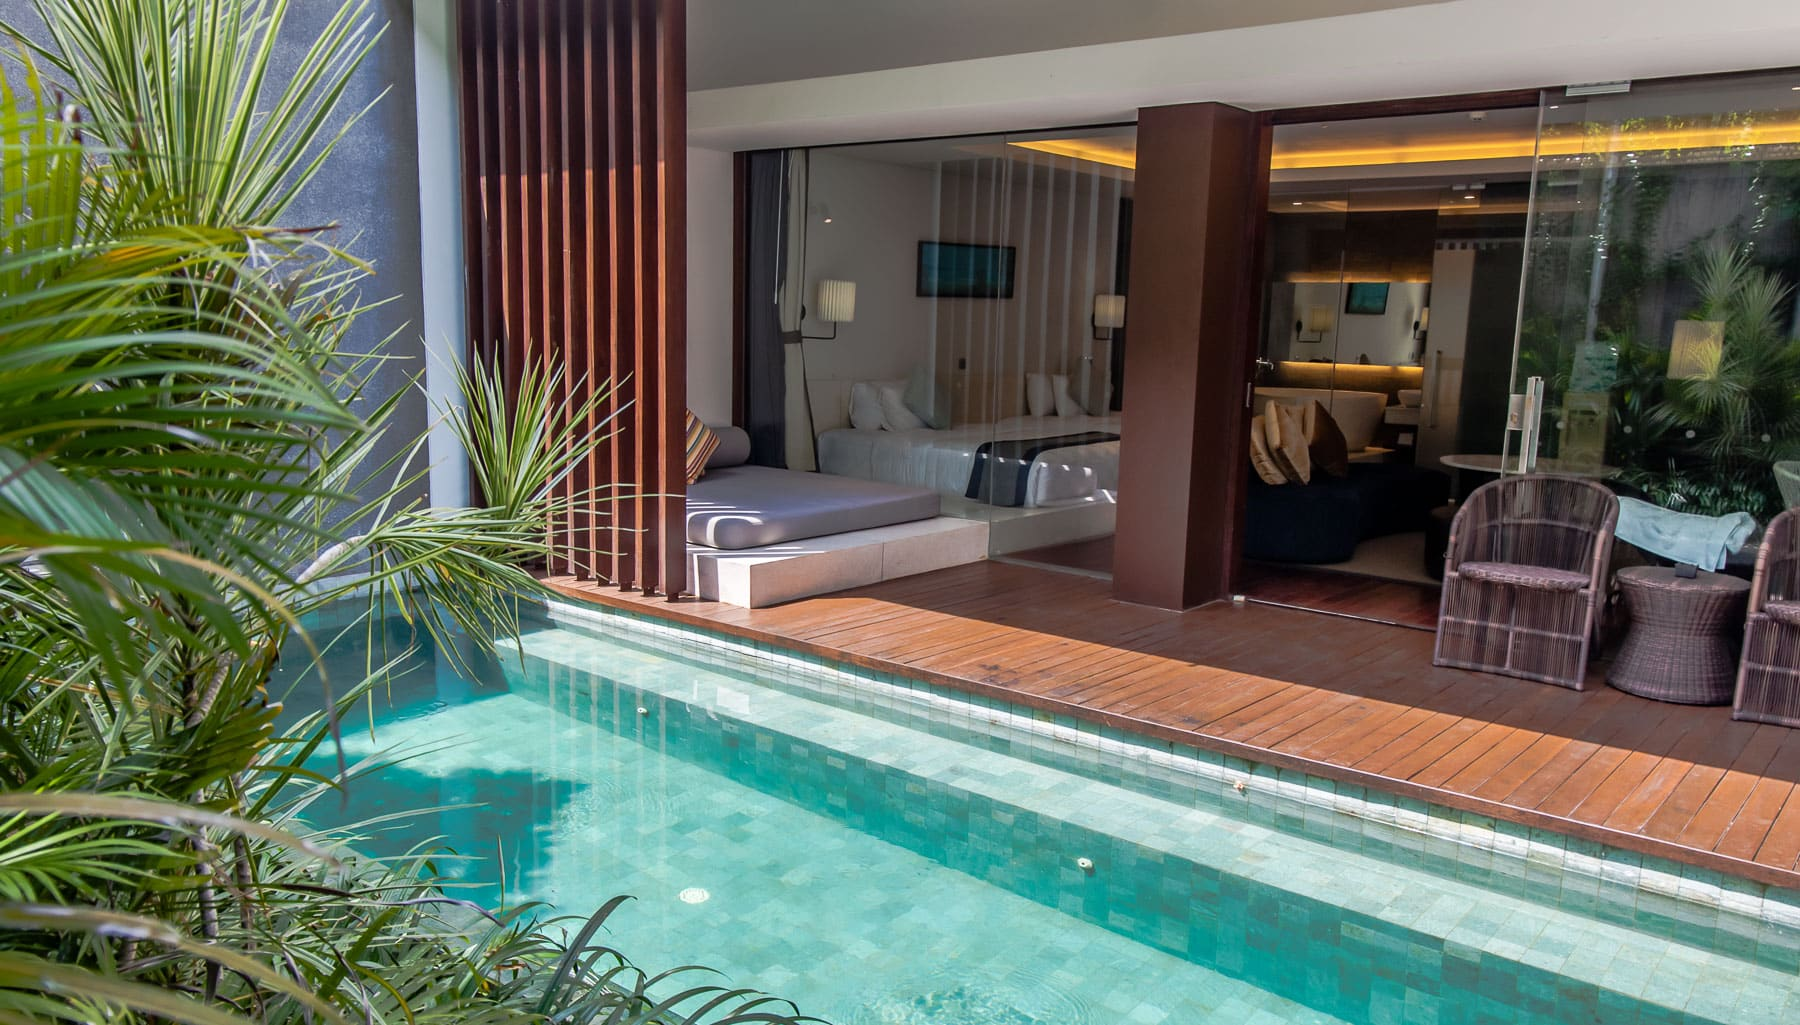 The watermark hotel spa in jimbaran review for Bali accommodation recommendations